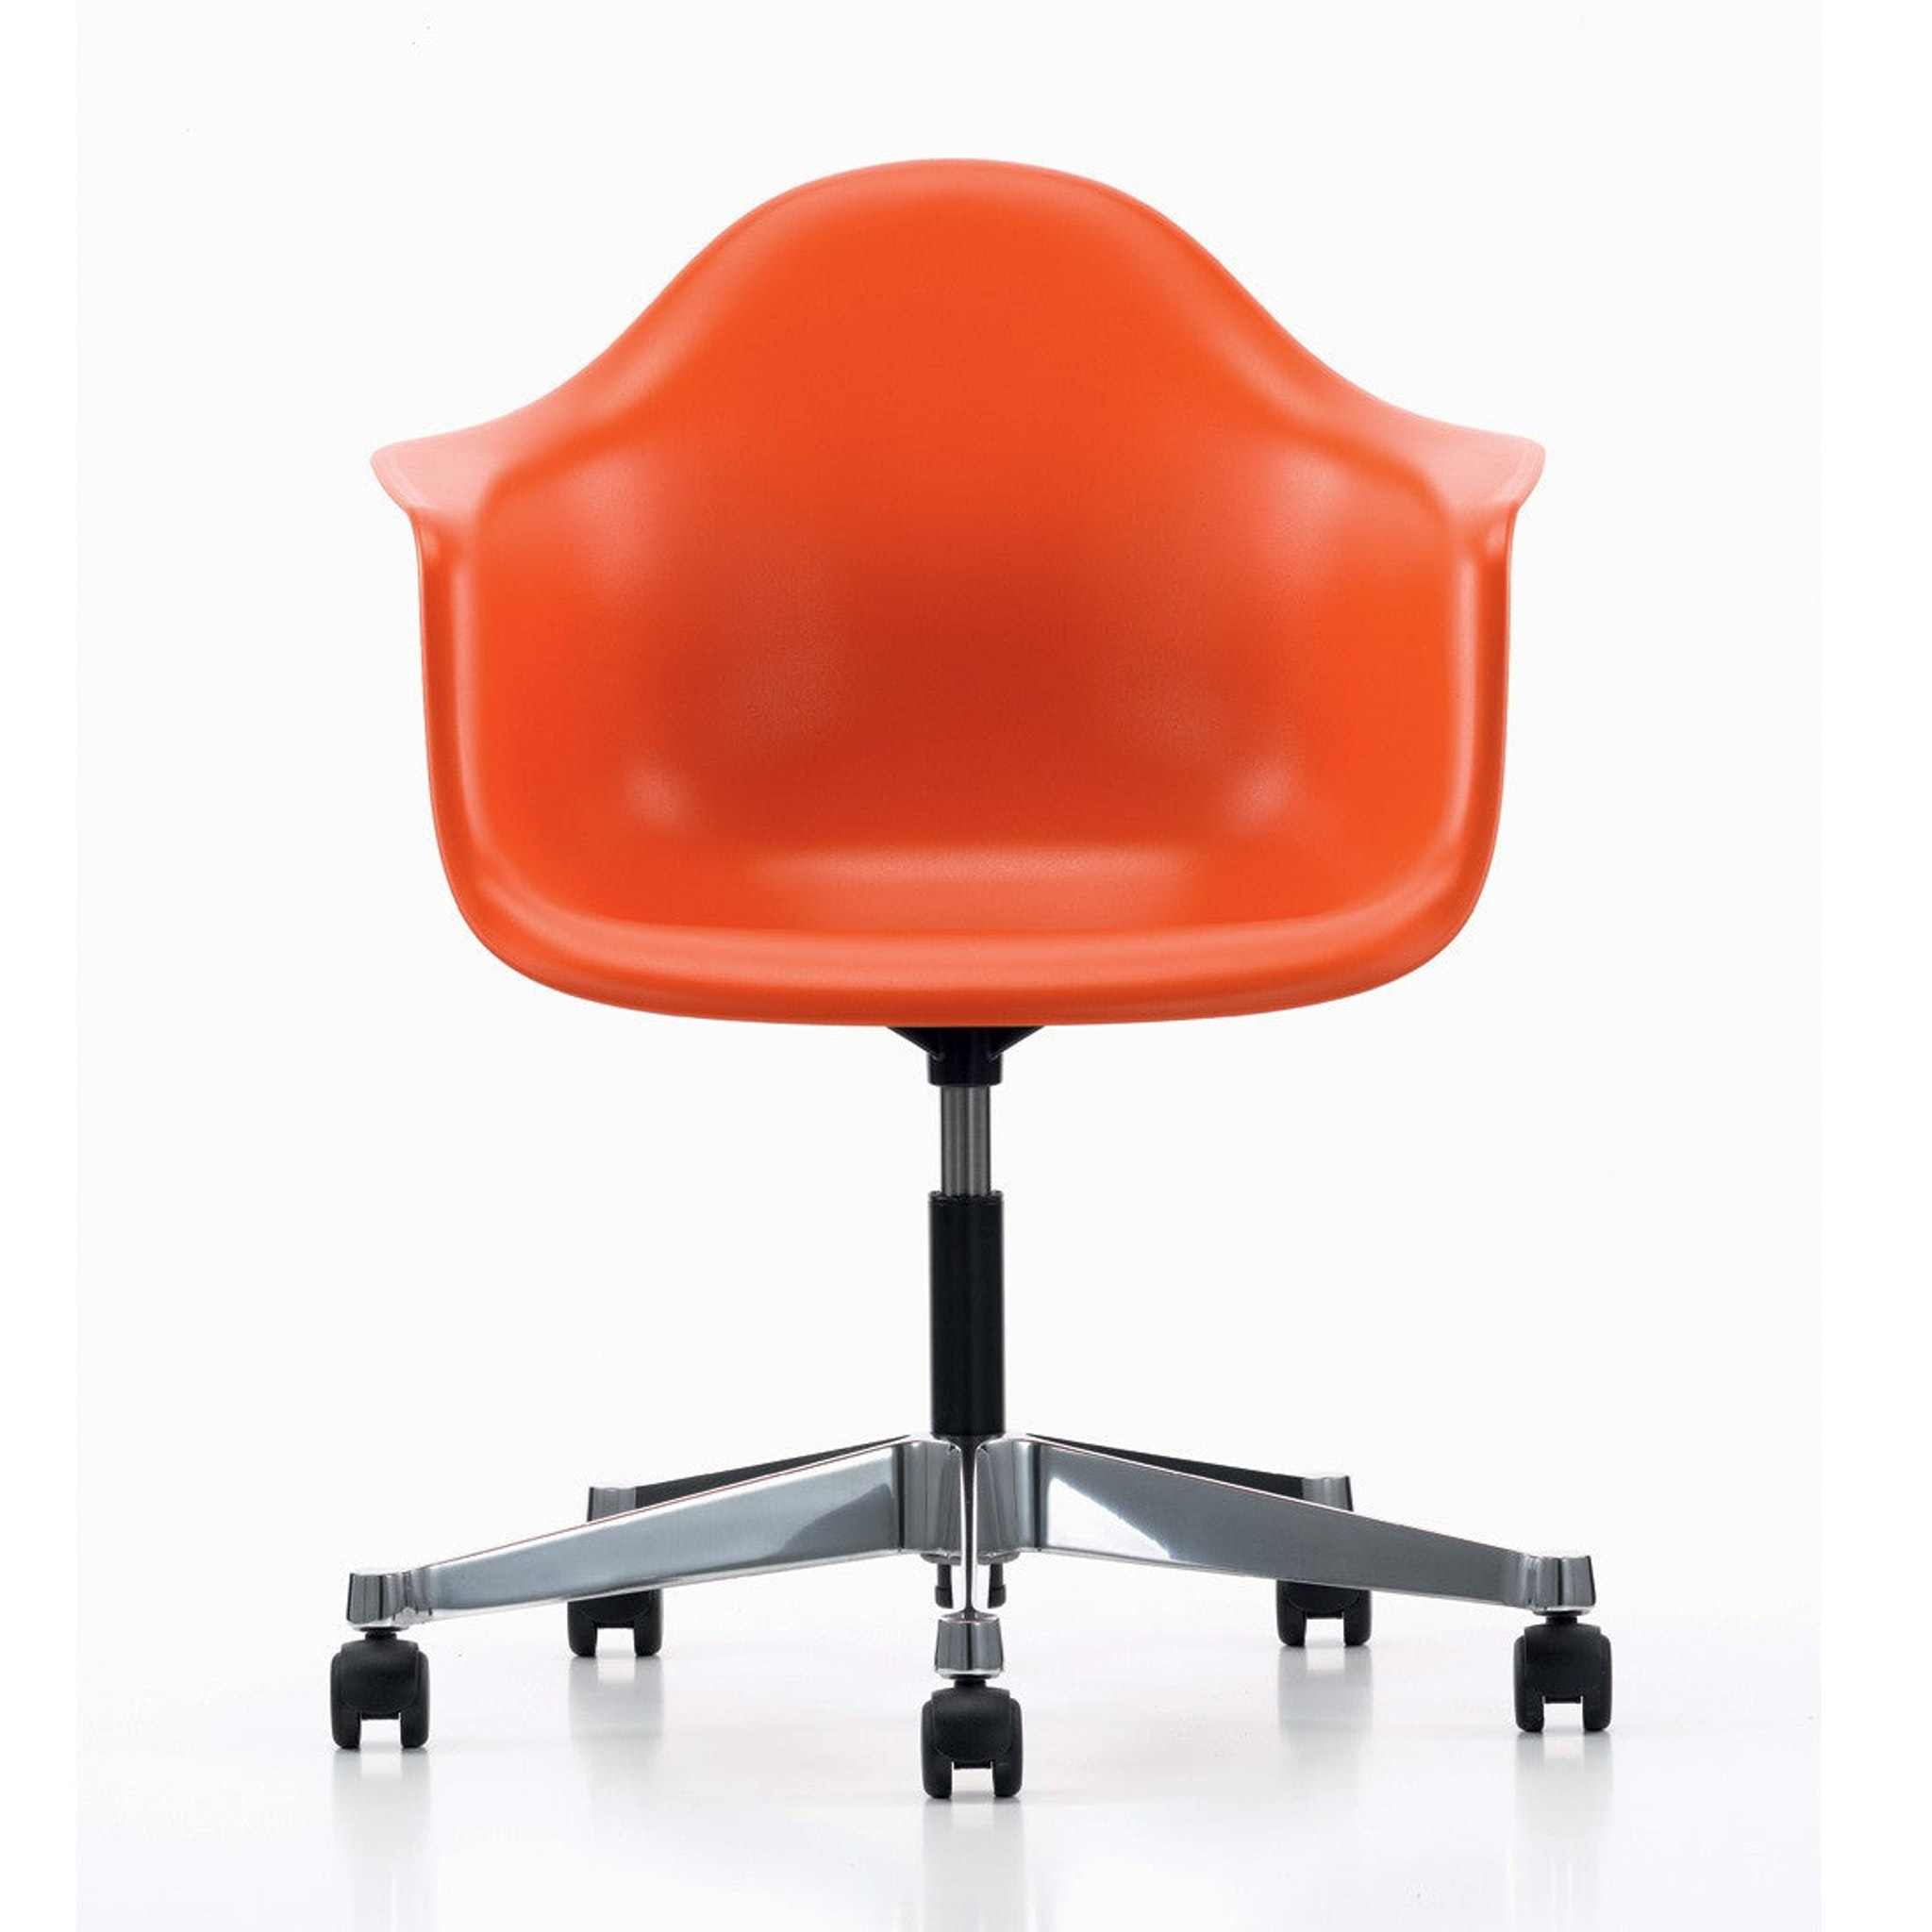 PACC chair by Vitra